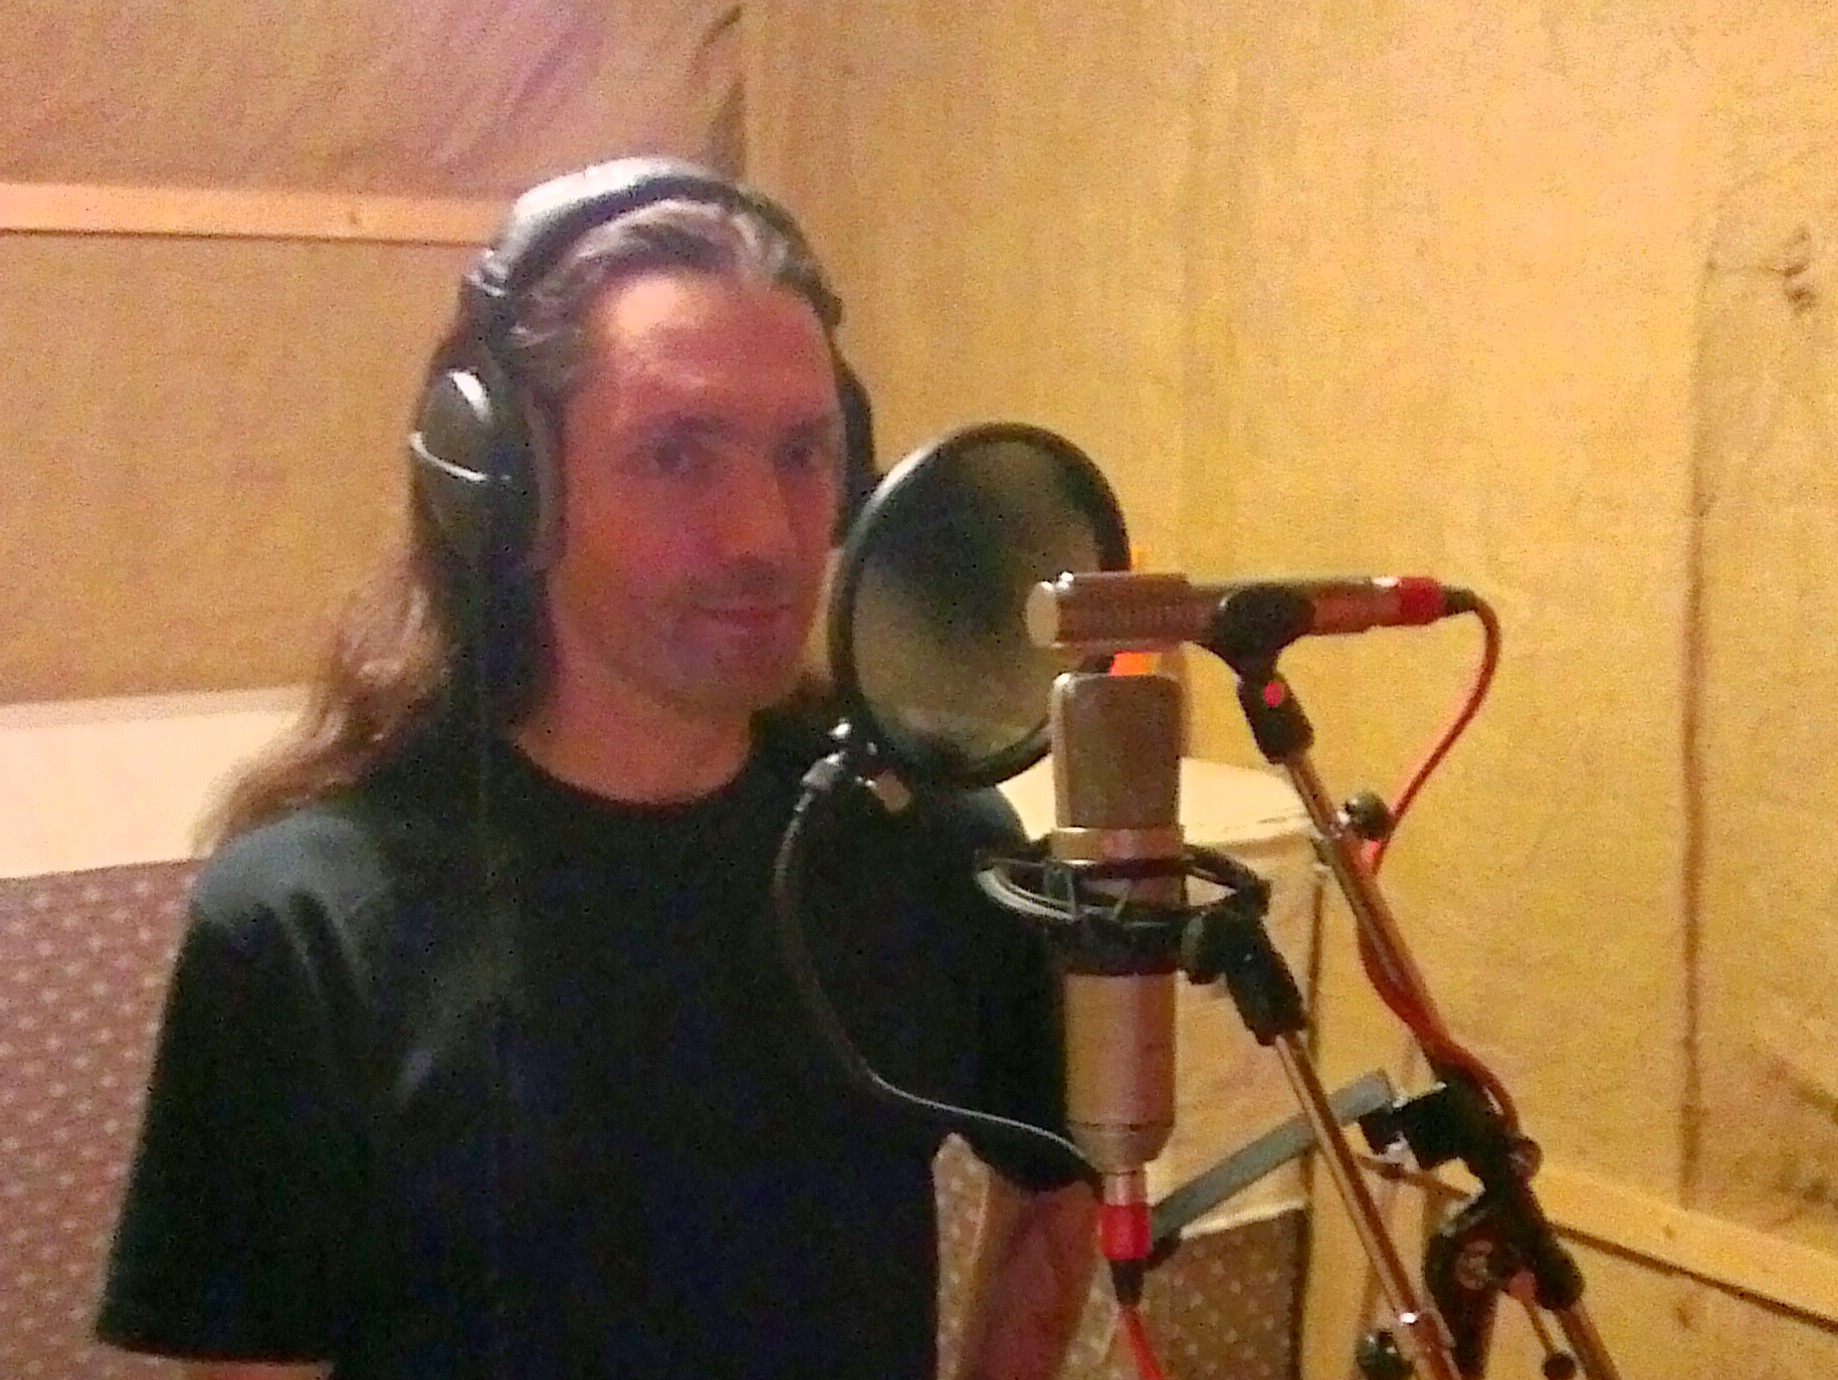 Dave recording the vocals